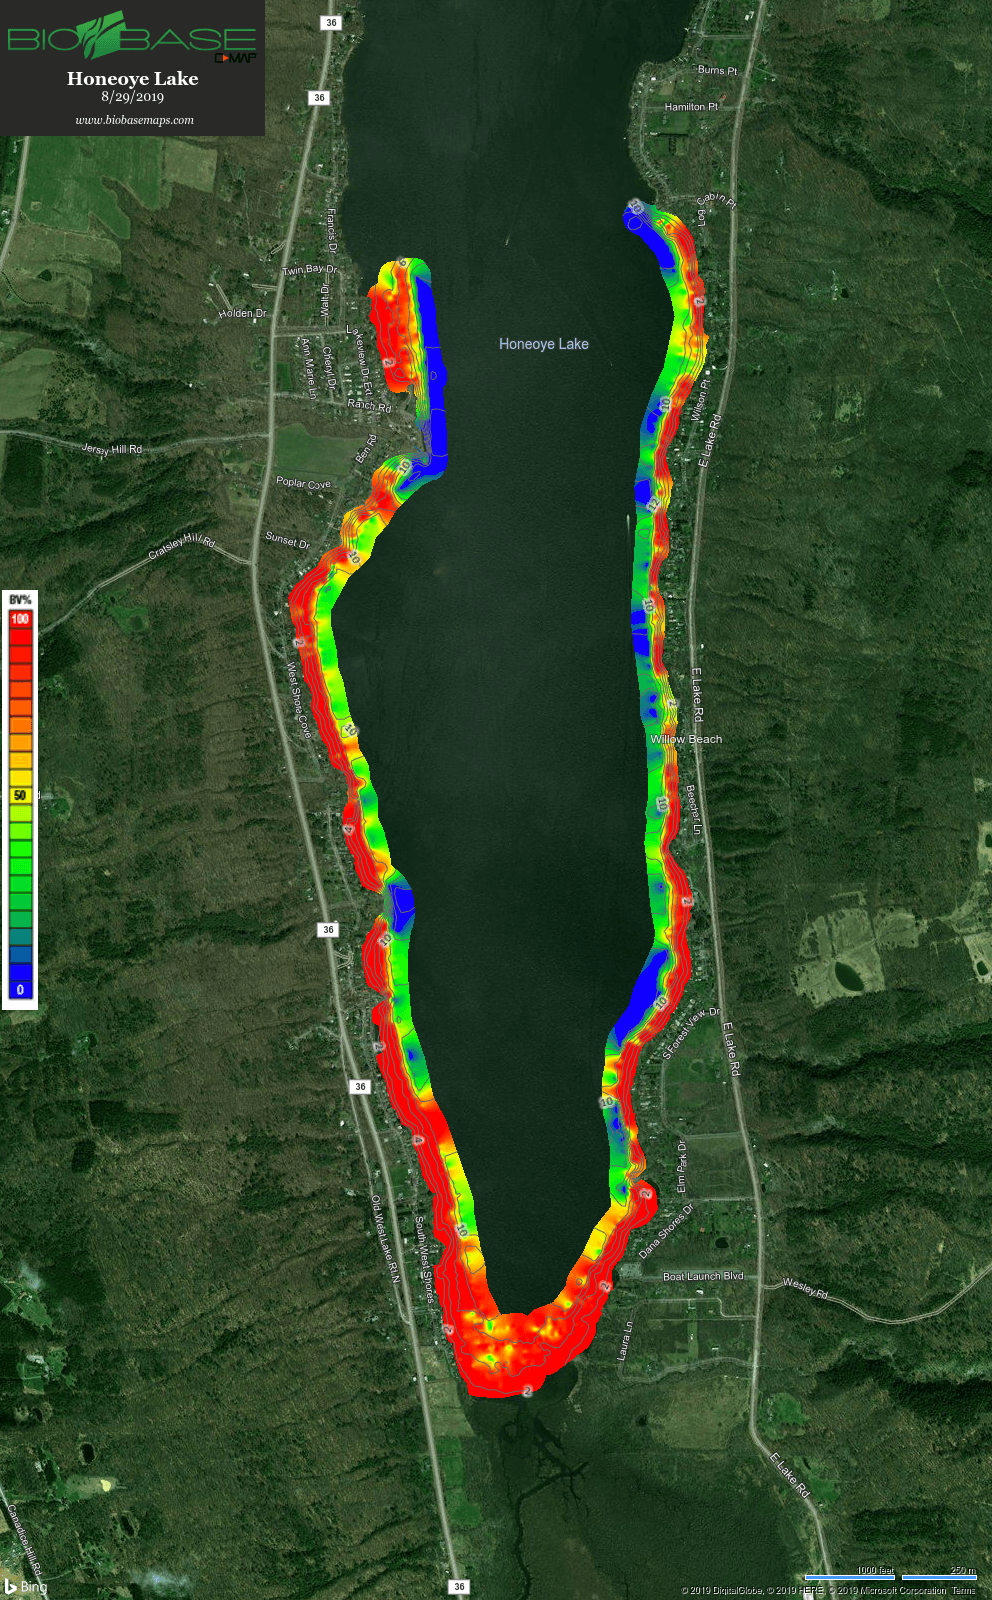 Honeoye Lake Southern Lake Basin Macrophyte Map 082919